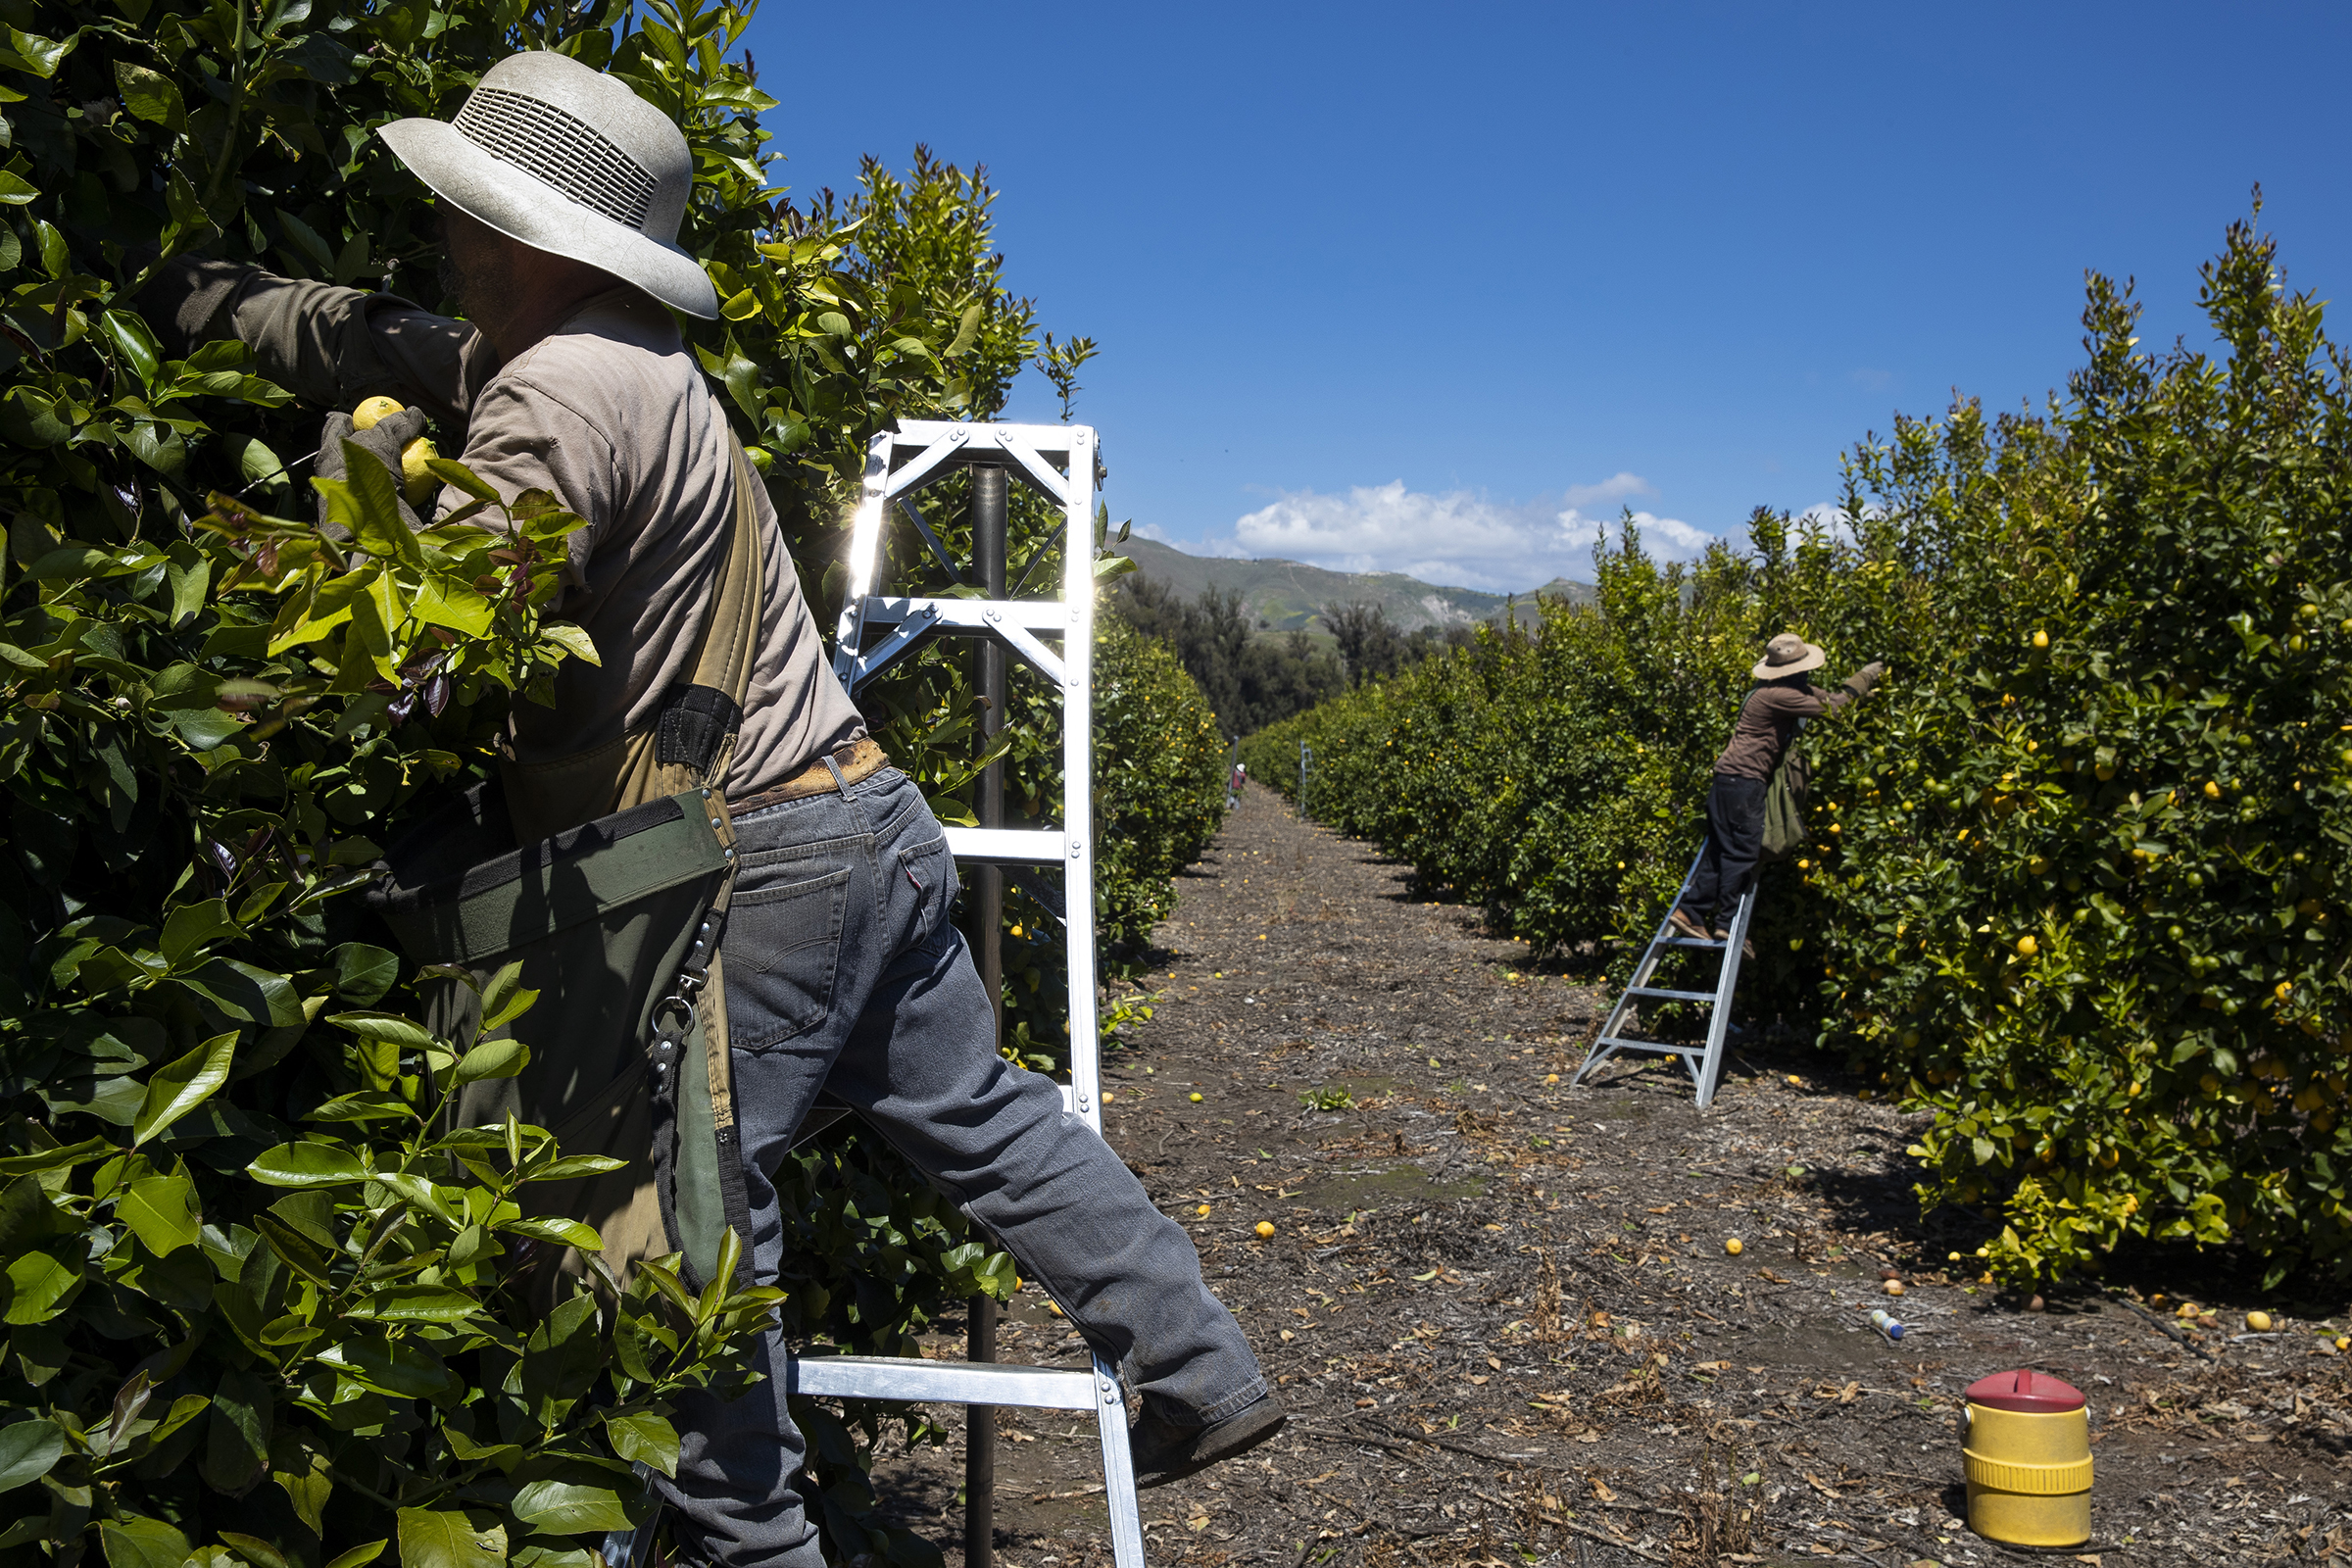 Agricultural laborers pick lemons inside the orchards of Samag Services, Inc in Mesa, California, on March 27, 2020.